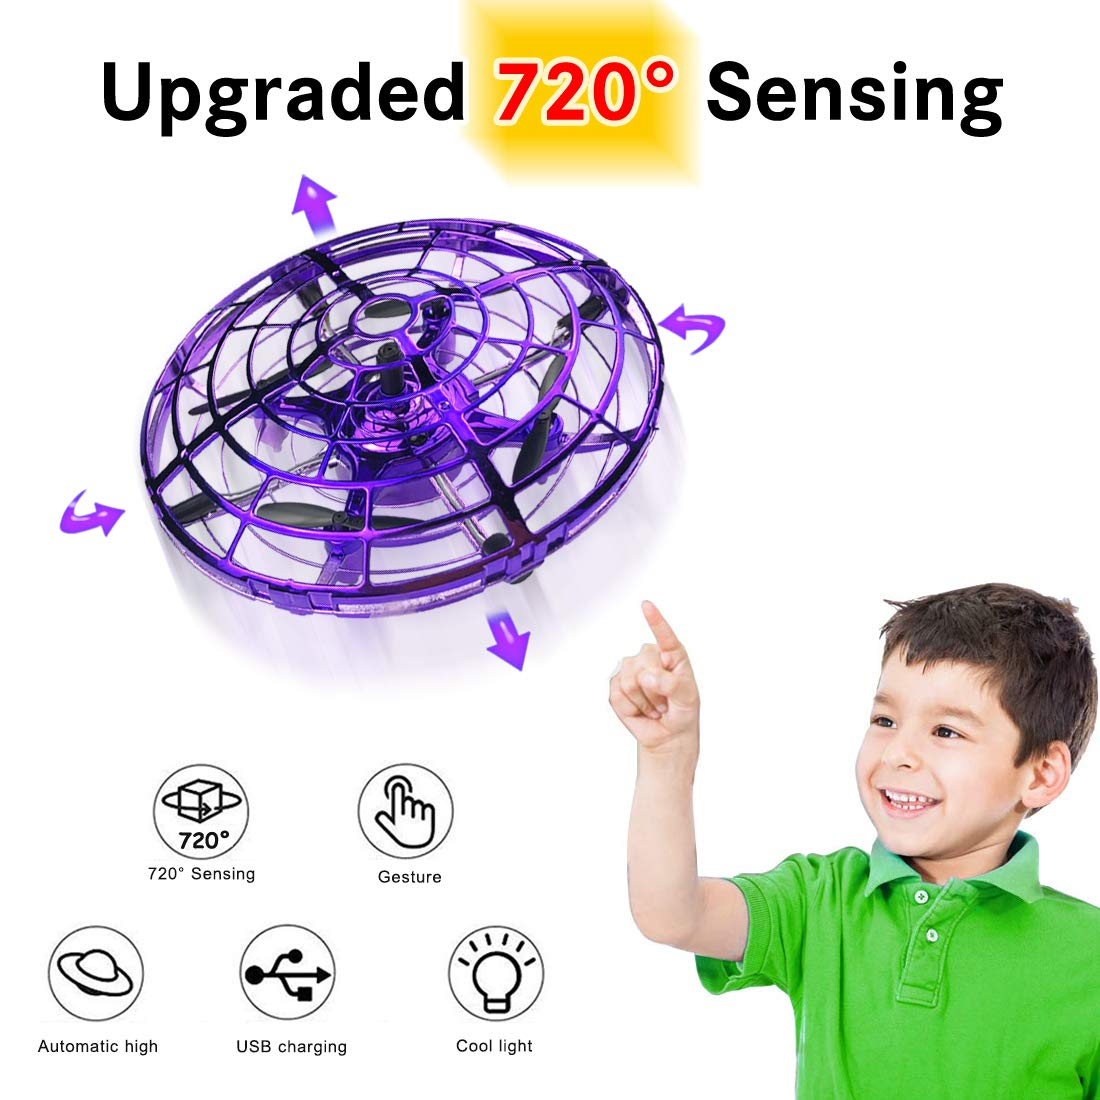 Hand Operated Drone for Kids Gift, WEW 6 Magical Senors Hands Free Toys Mini Drone Helicopter, Flying Ball Drone Toys Gift for Boys Girls Teenagers - Purple by WEW